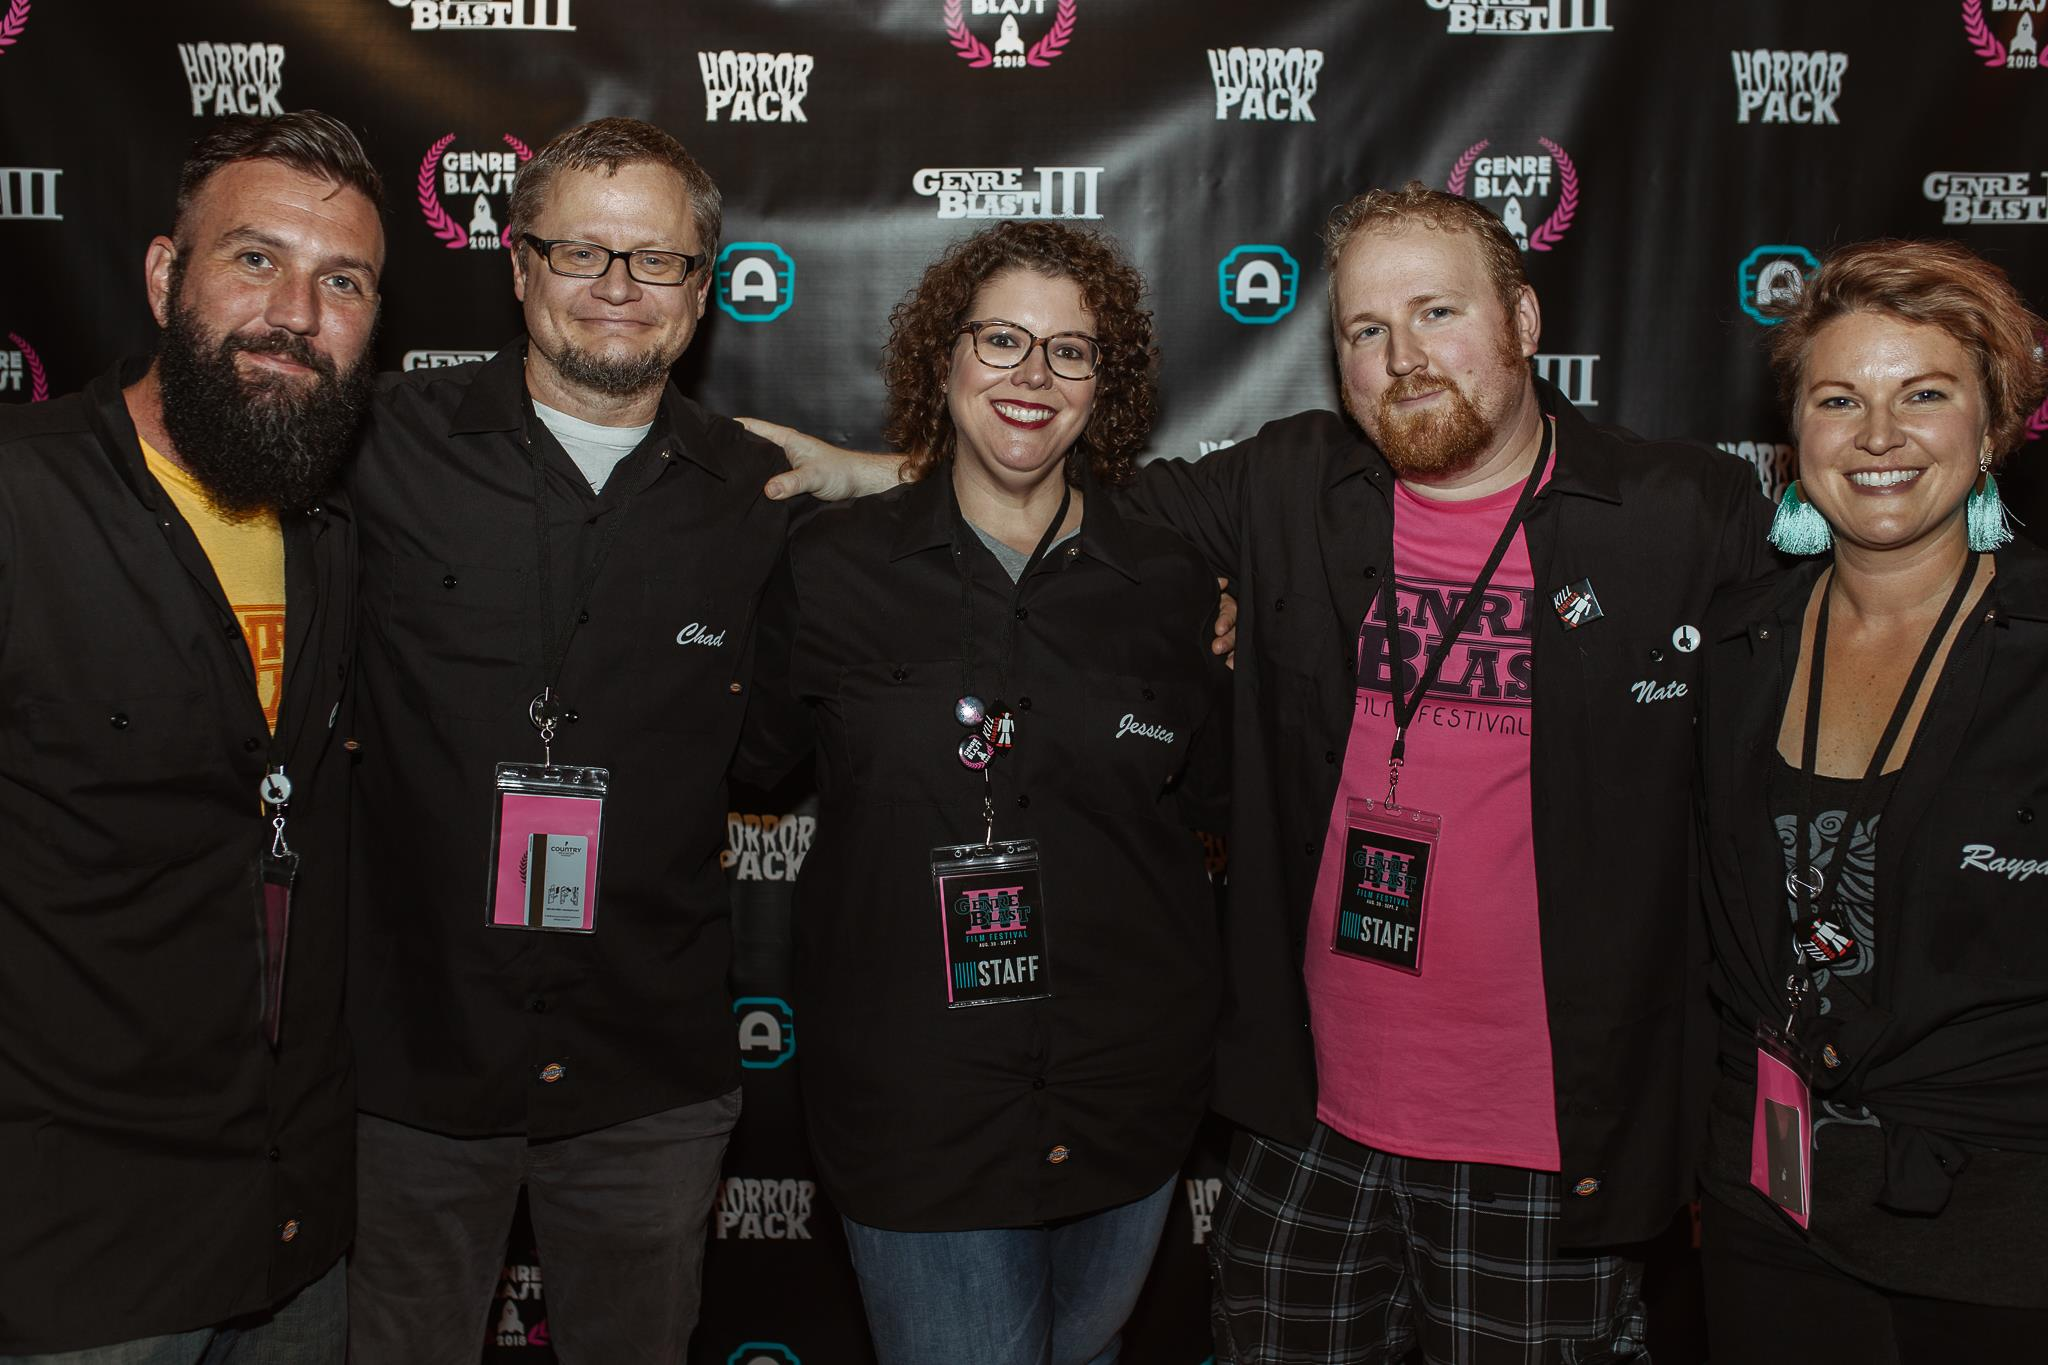 Pictured (left to right): Chris Thomas, Chad Farmer, Jessica Crump, Nathan Ludwig, Raygan Ketterer